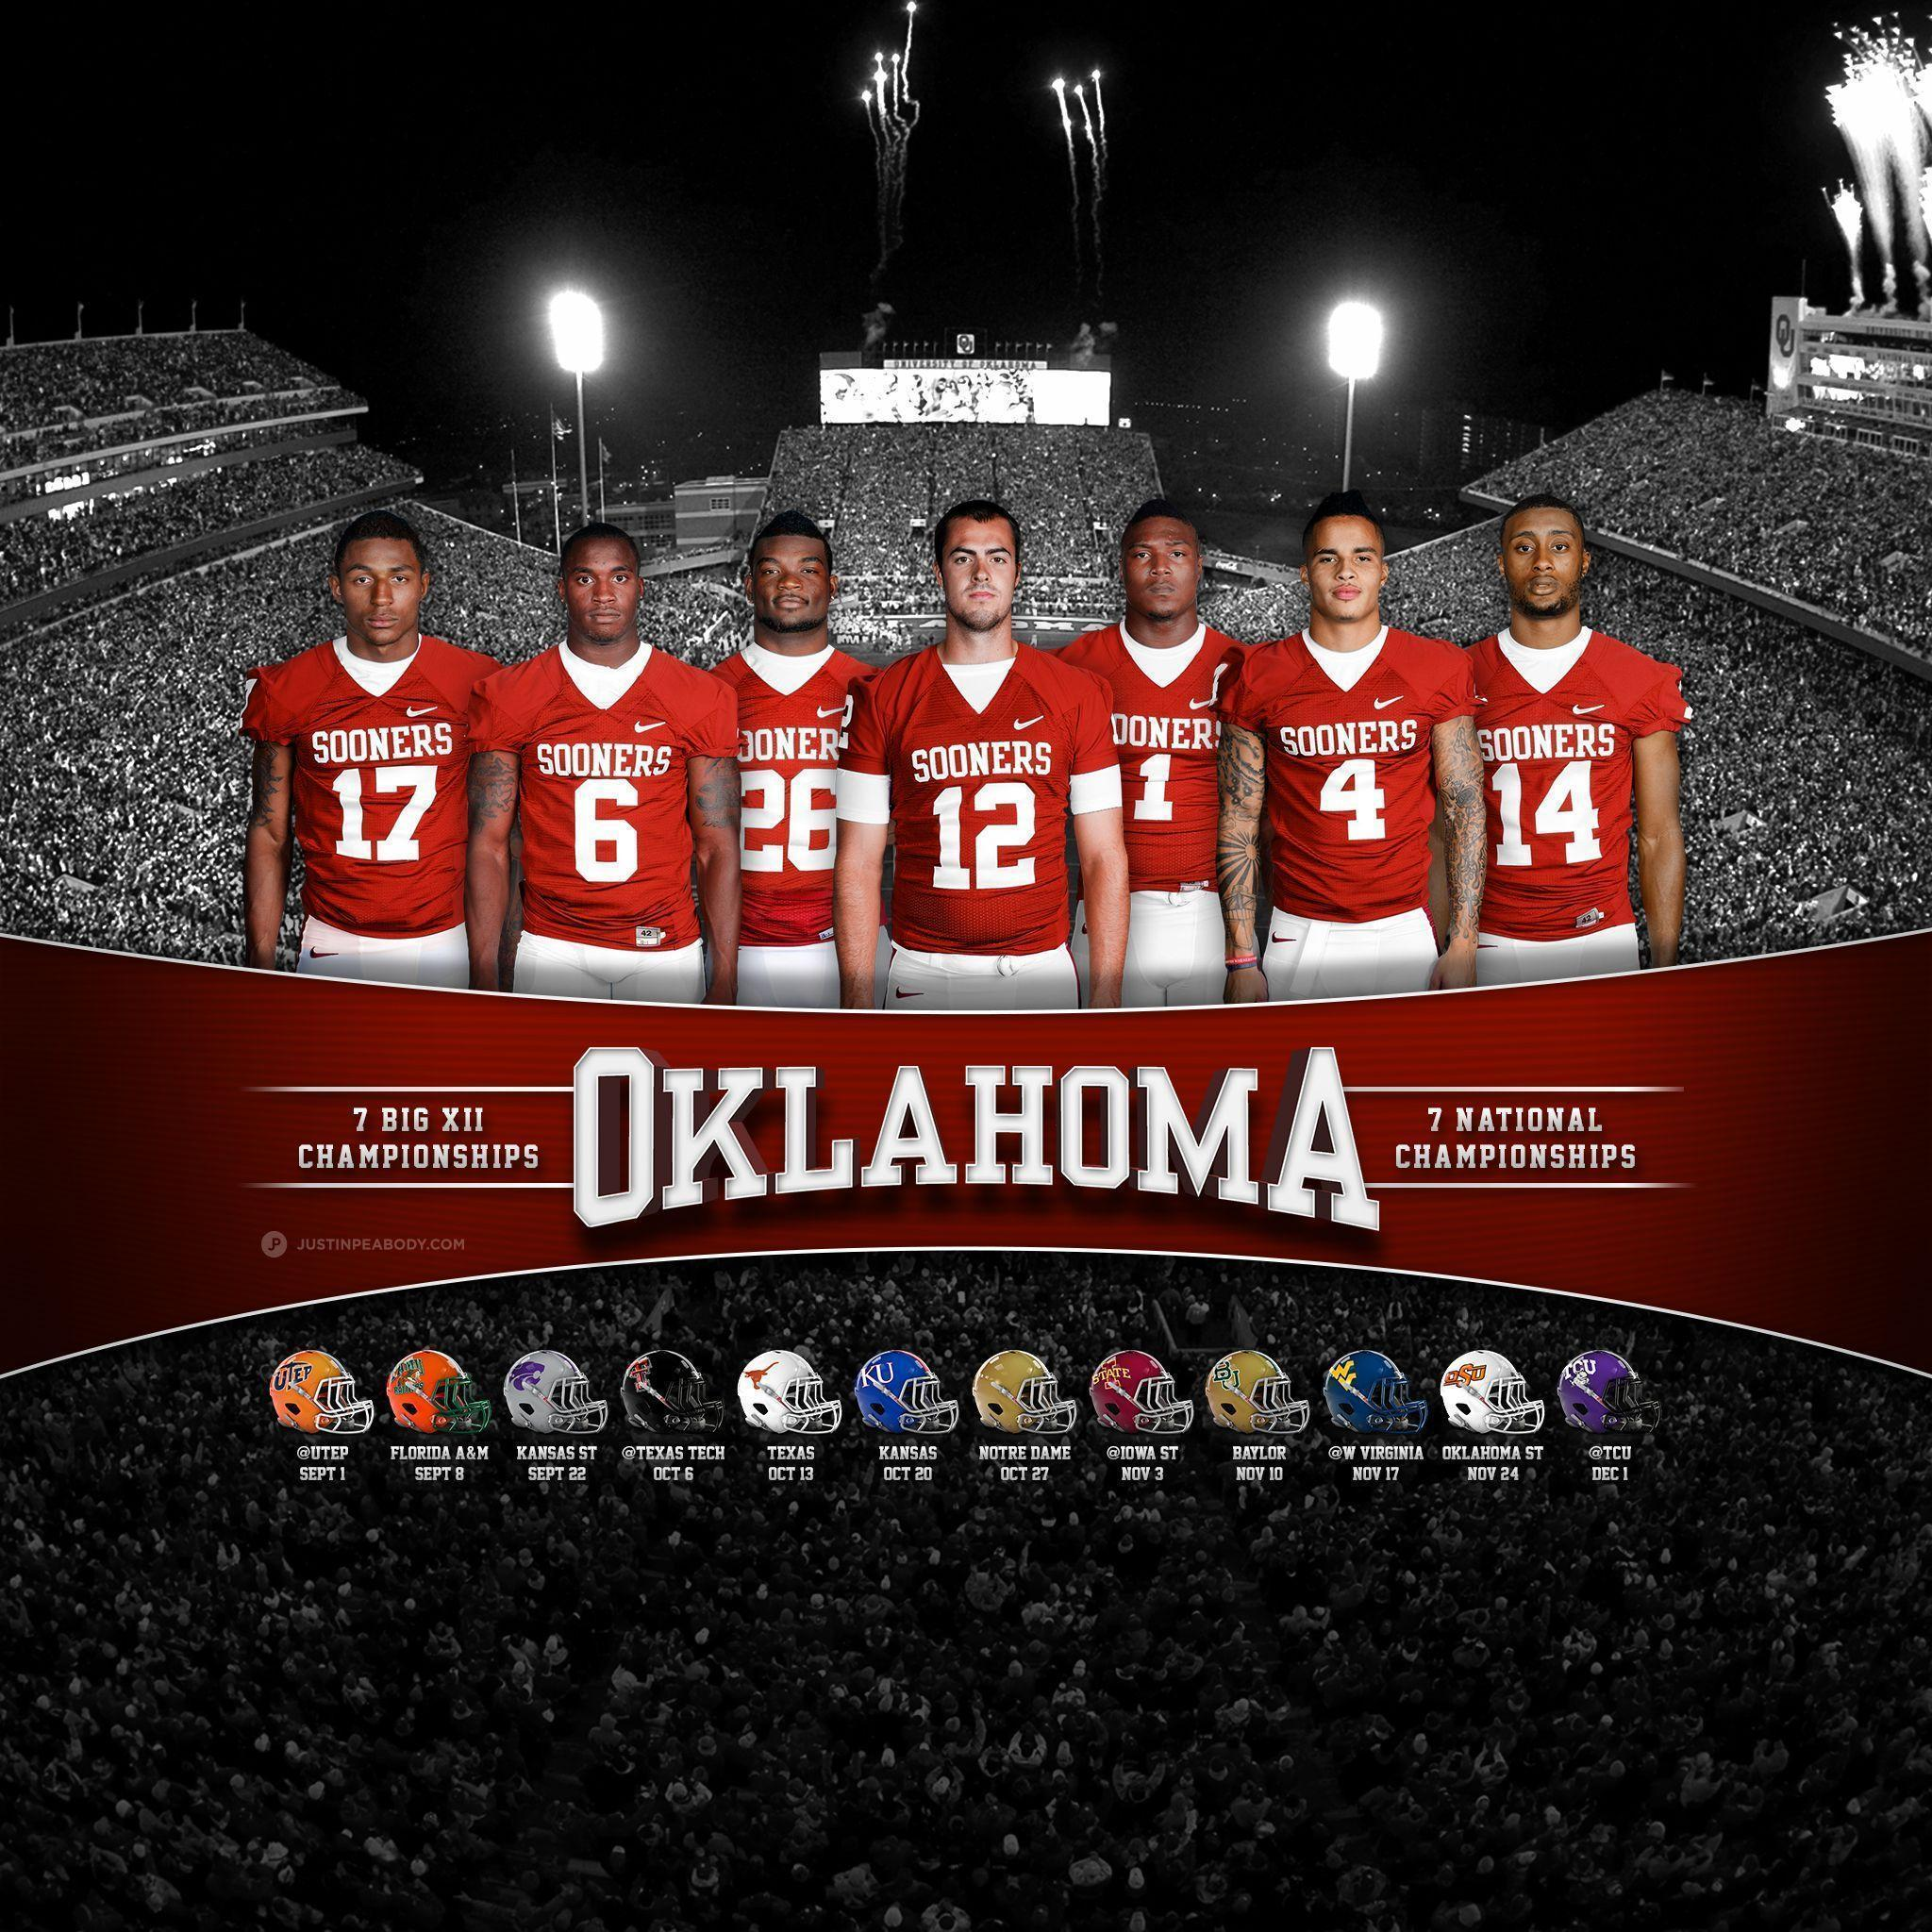 2012 OU Football Wallpapers [Archive]